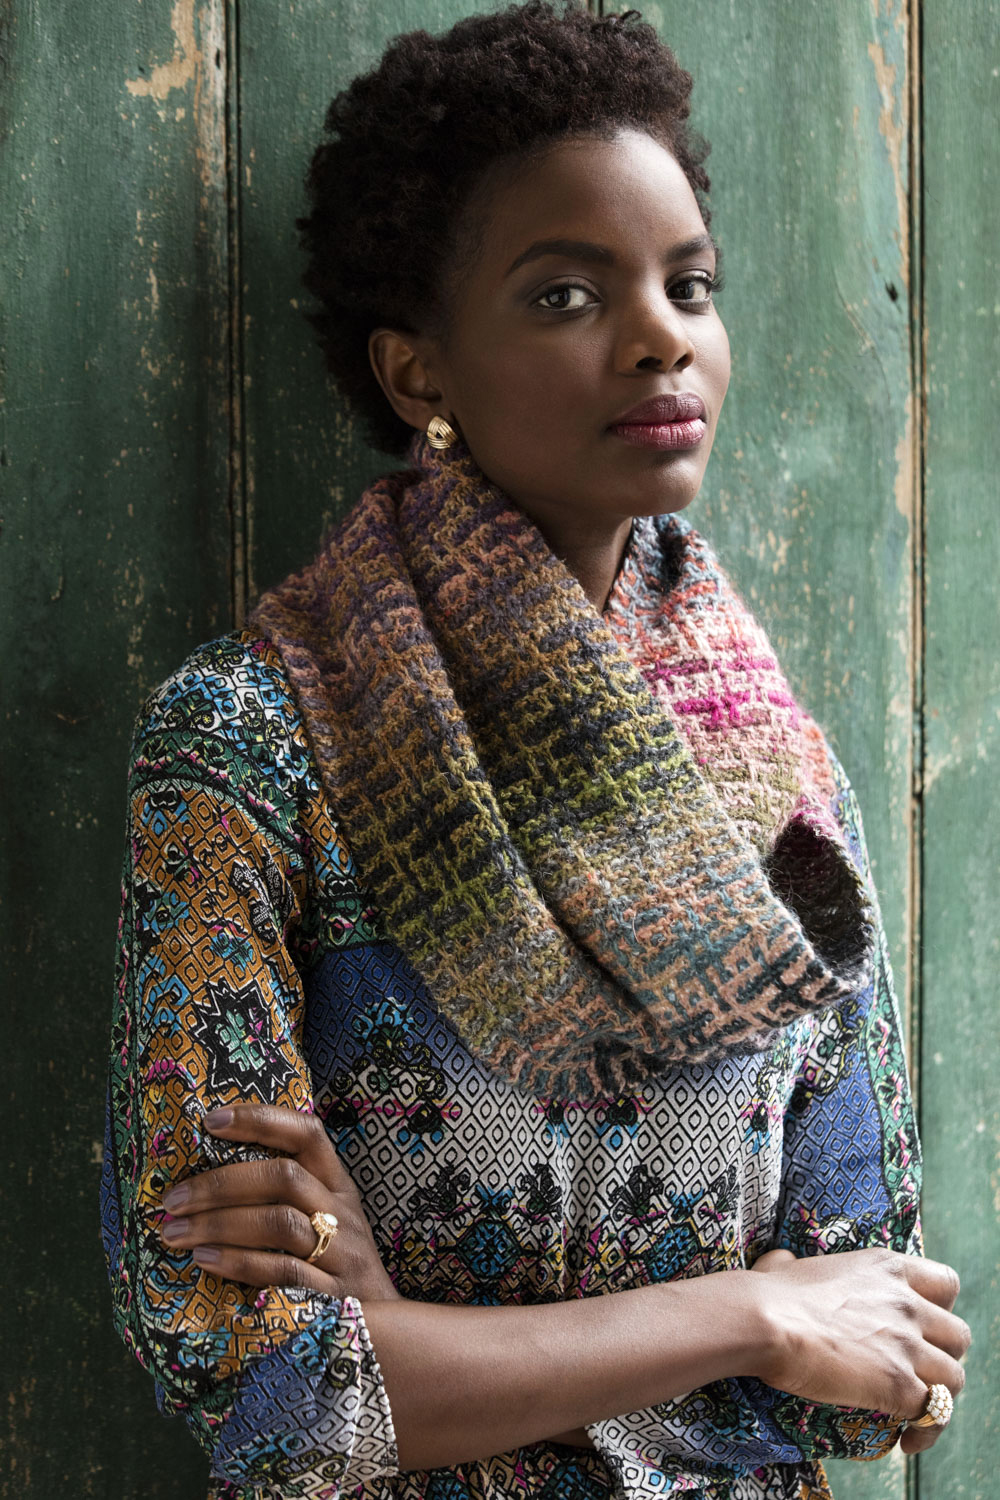 vogue_knitting_new_york_photographer